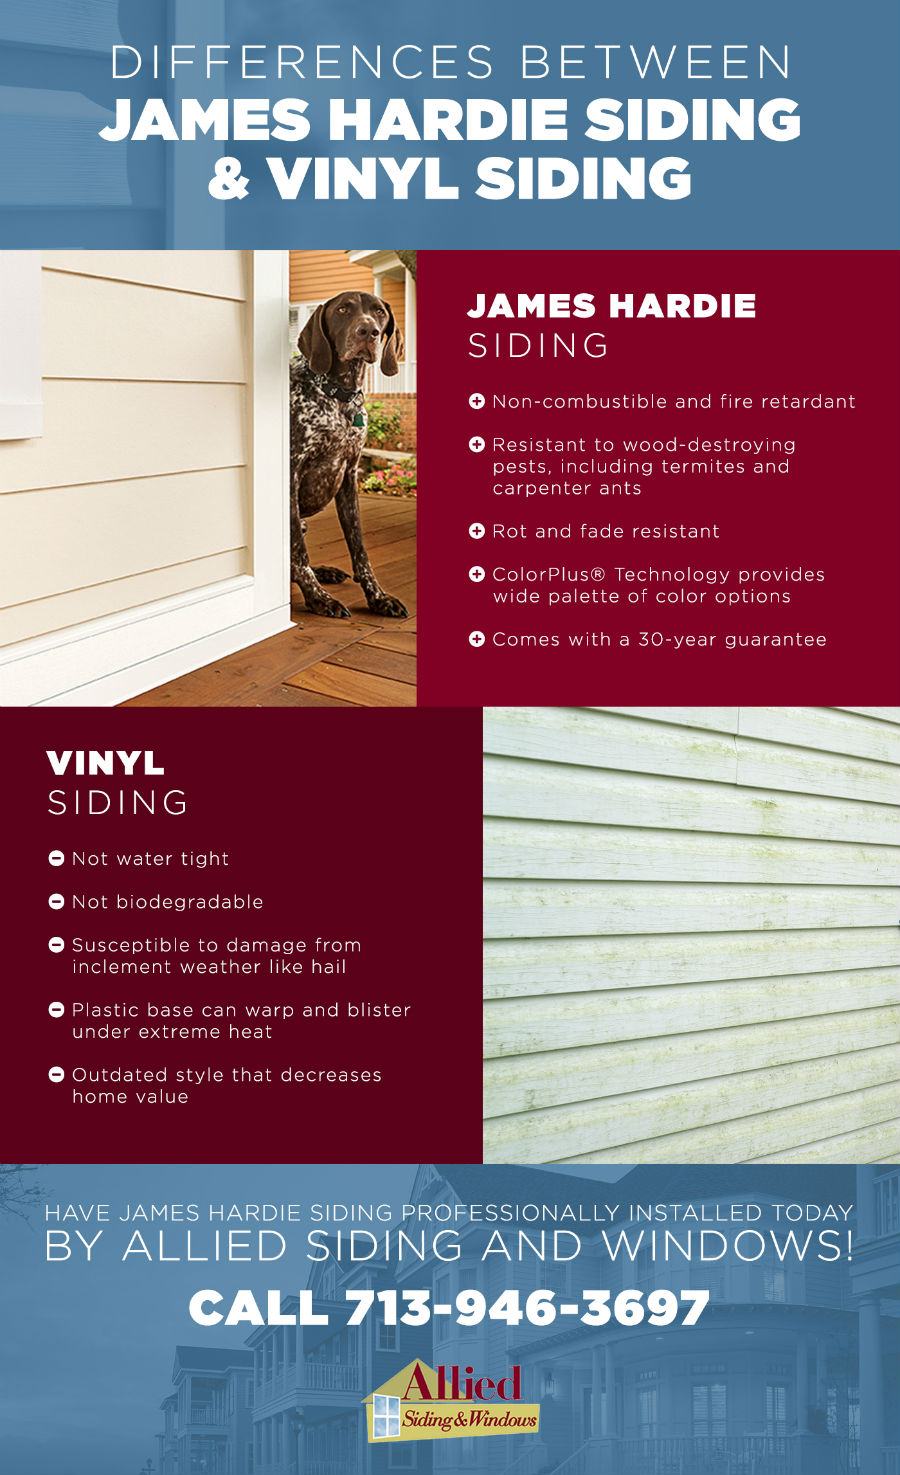 james hardie vs vinyl siding